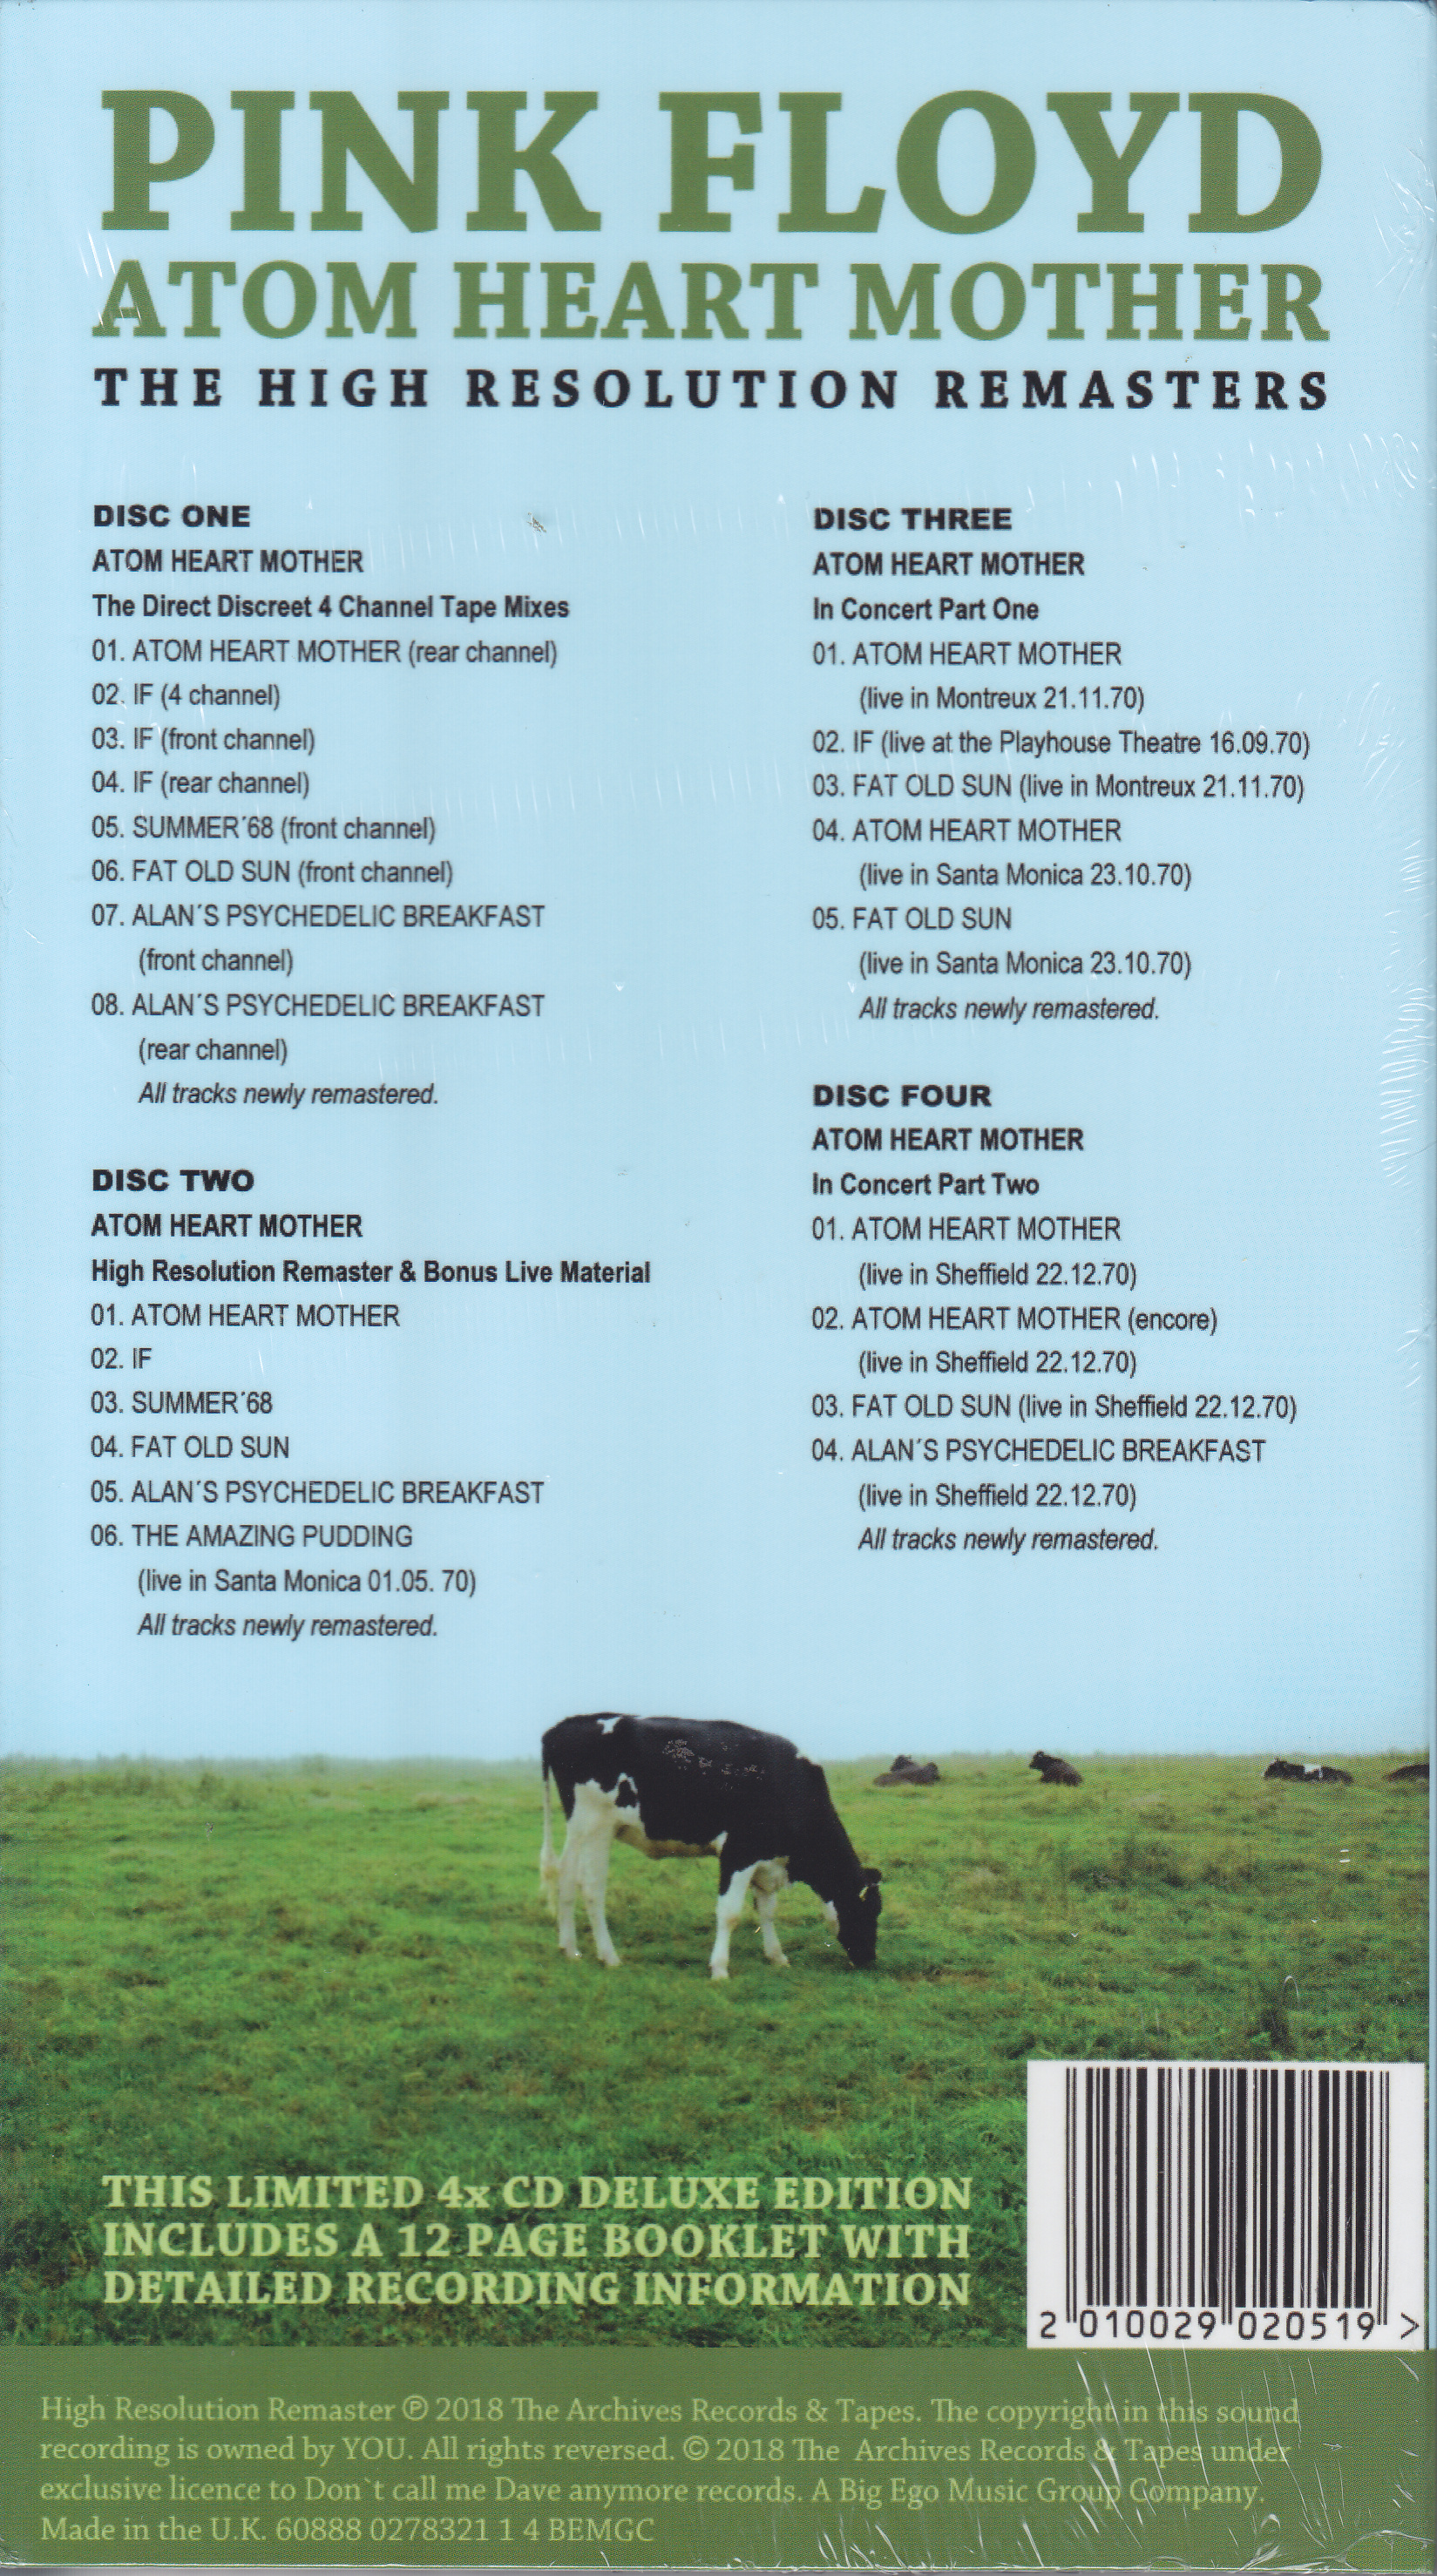 Pink floyd atom heart mother the high resolution - Pink floyd images high resolution ...